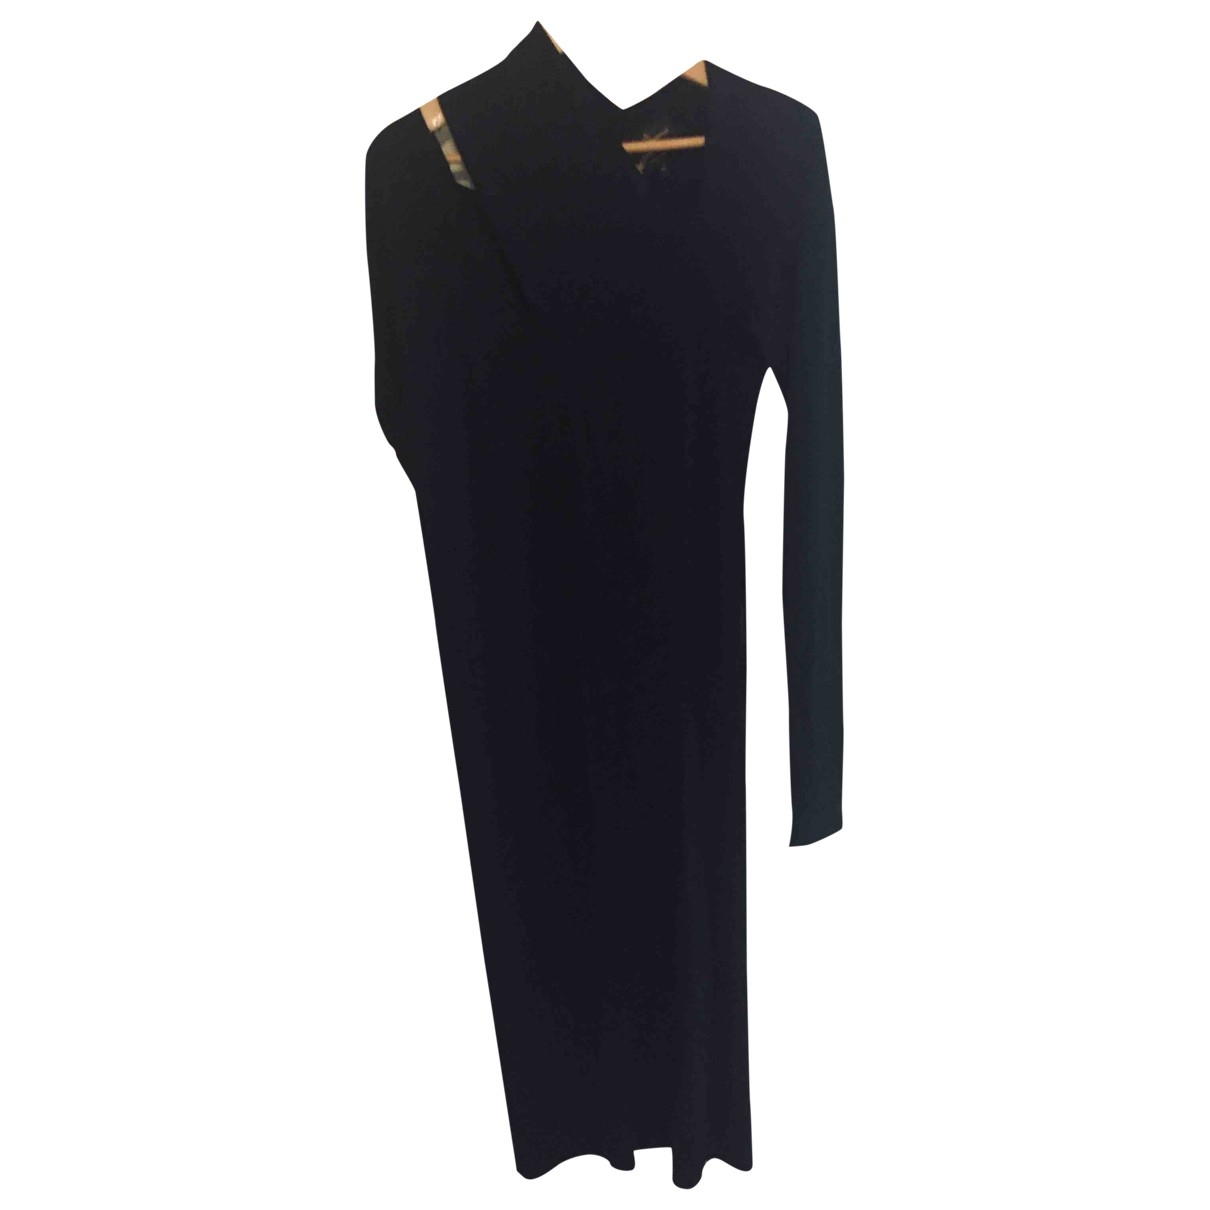 Vivienne Westwood Anglomania \N Black dress for Women 12 UK